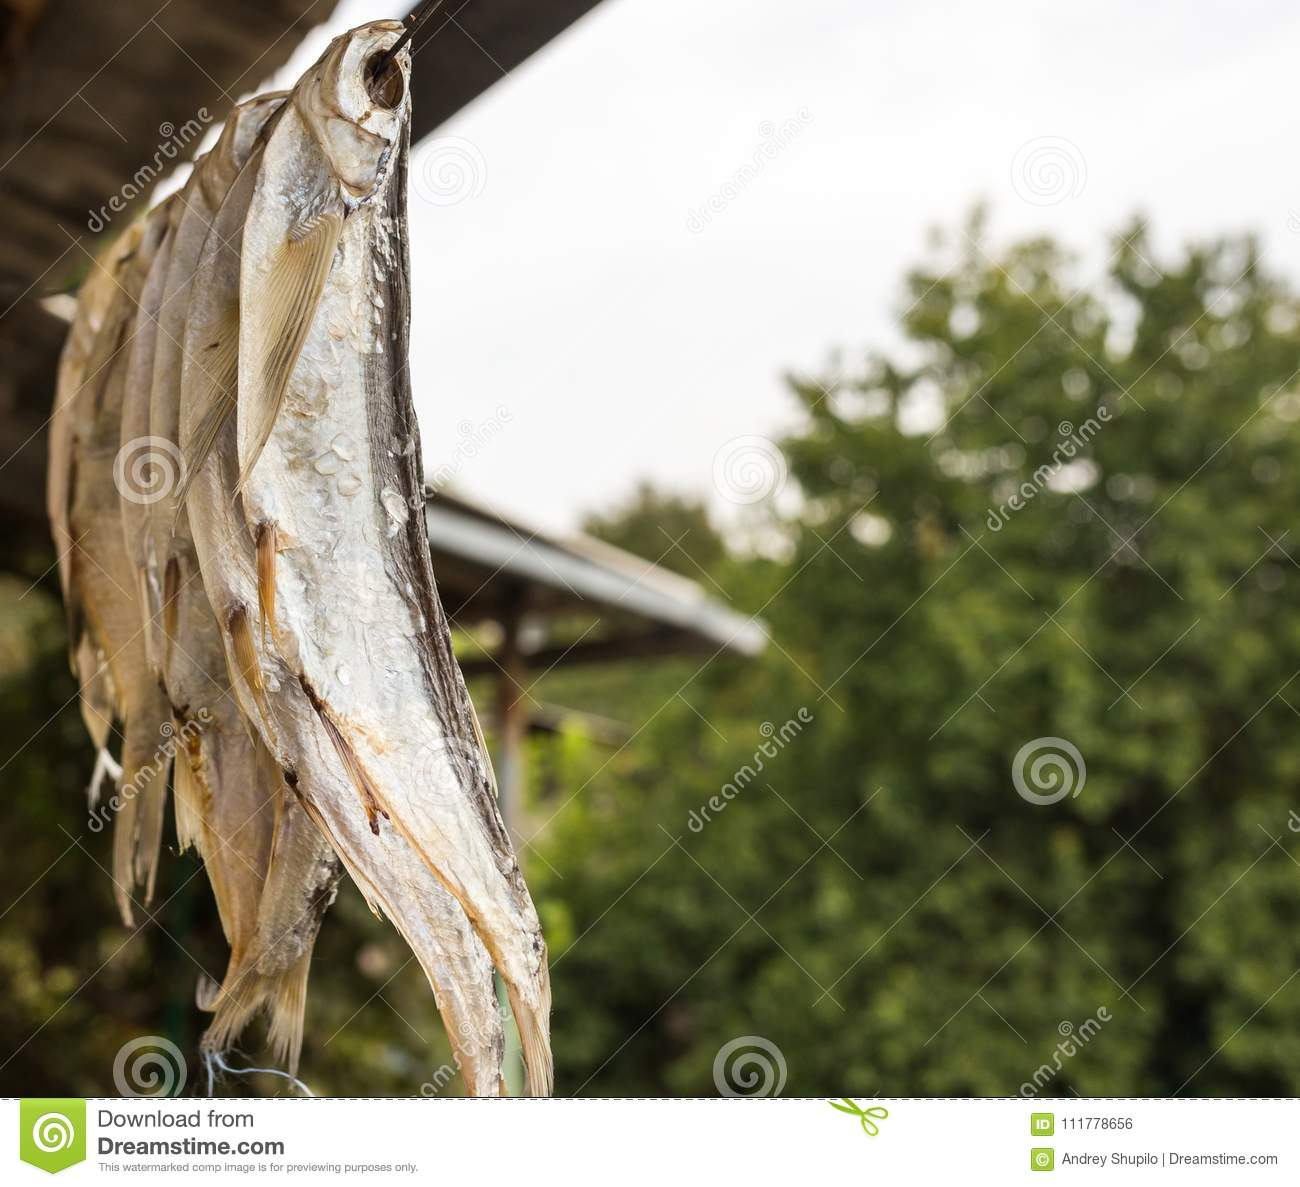 Dry salted fish outdoors